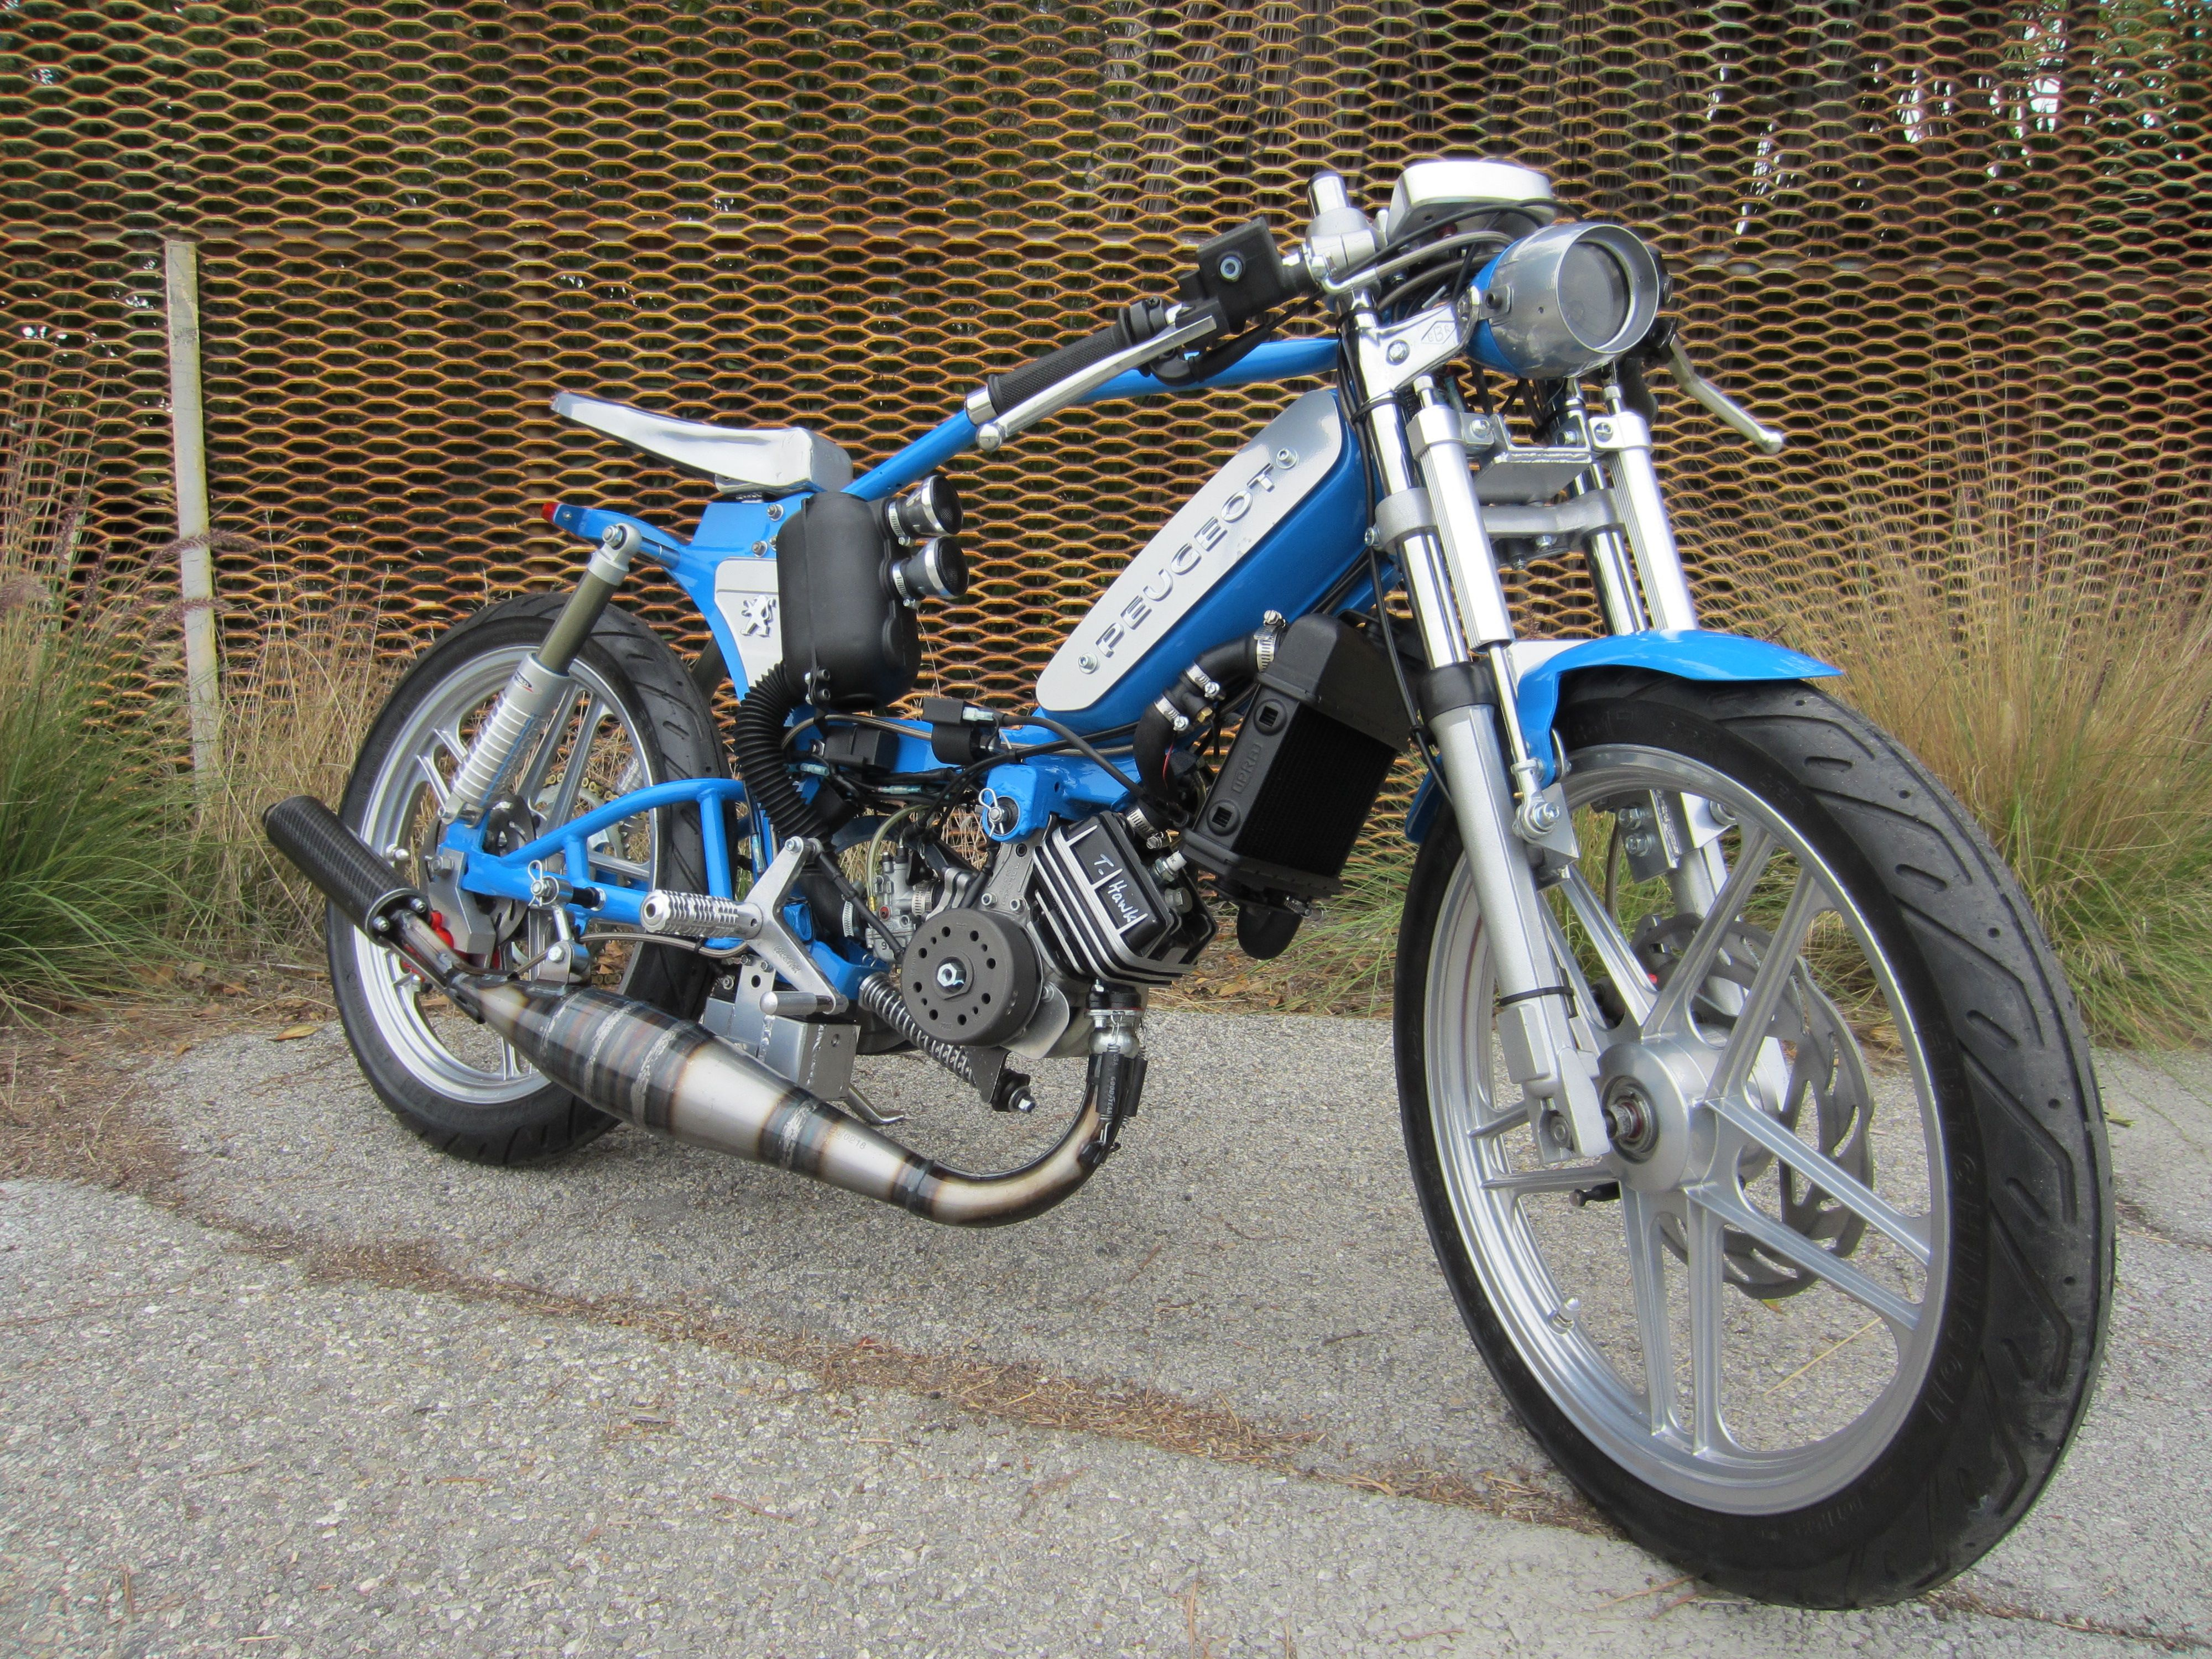 2 stroke 50cc scooters pinterest mopeds scooters and pit bike. Black Bedroom Furniture Sets. Home Design Ideas